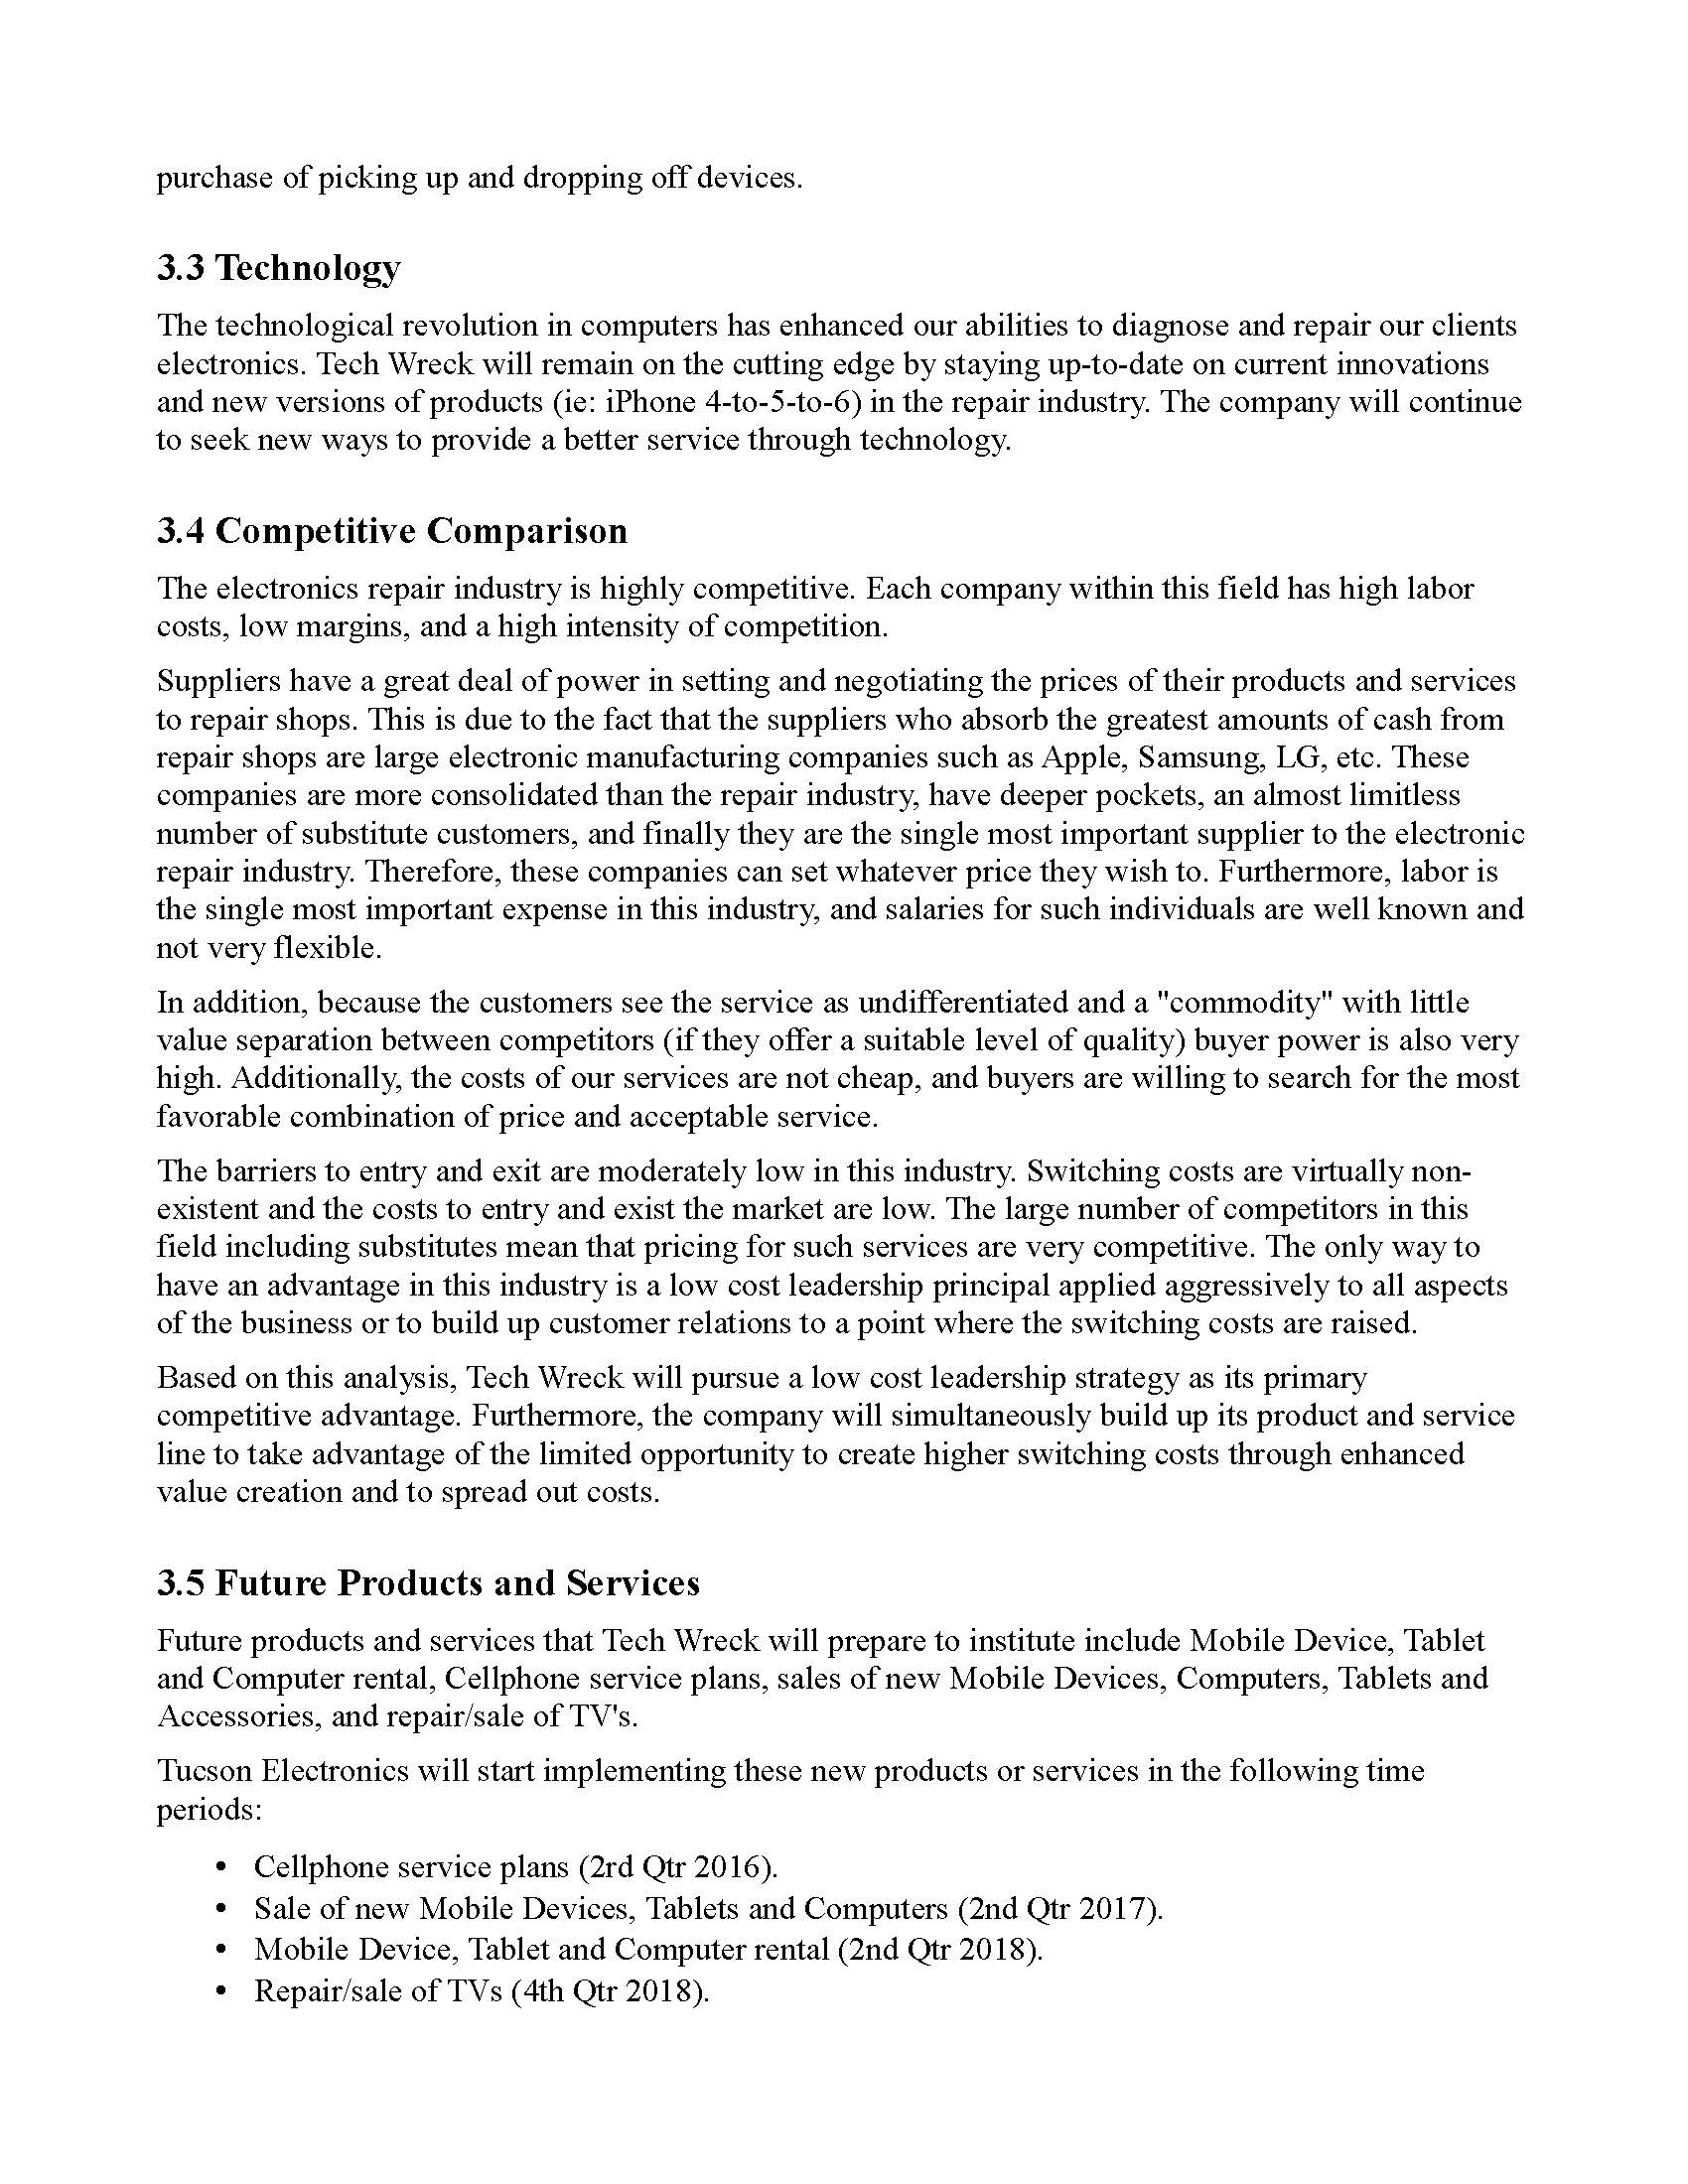 Tech Wreck 3 Year Business Plan_Page_07.jpg